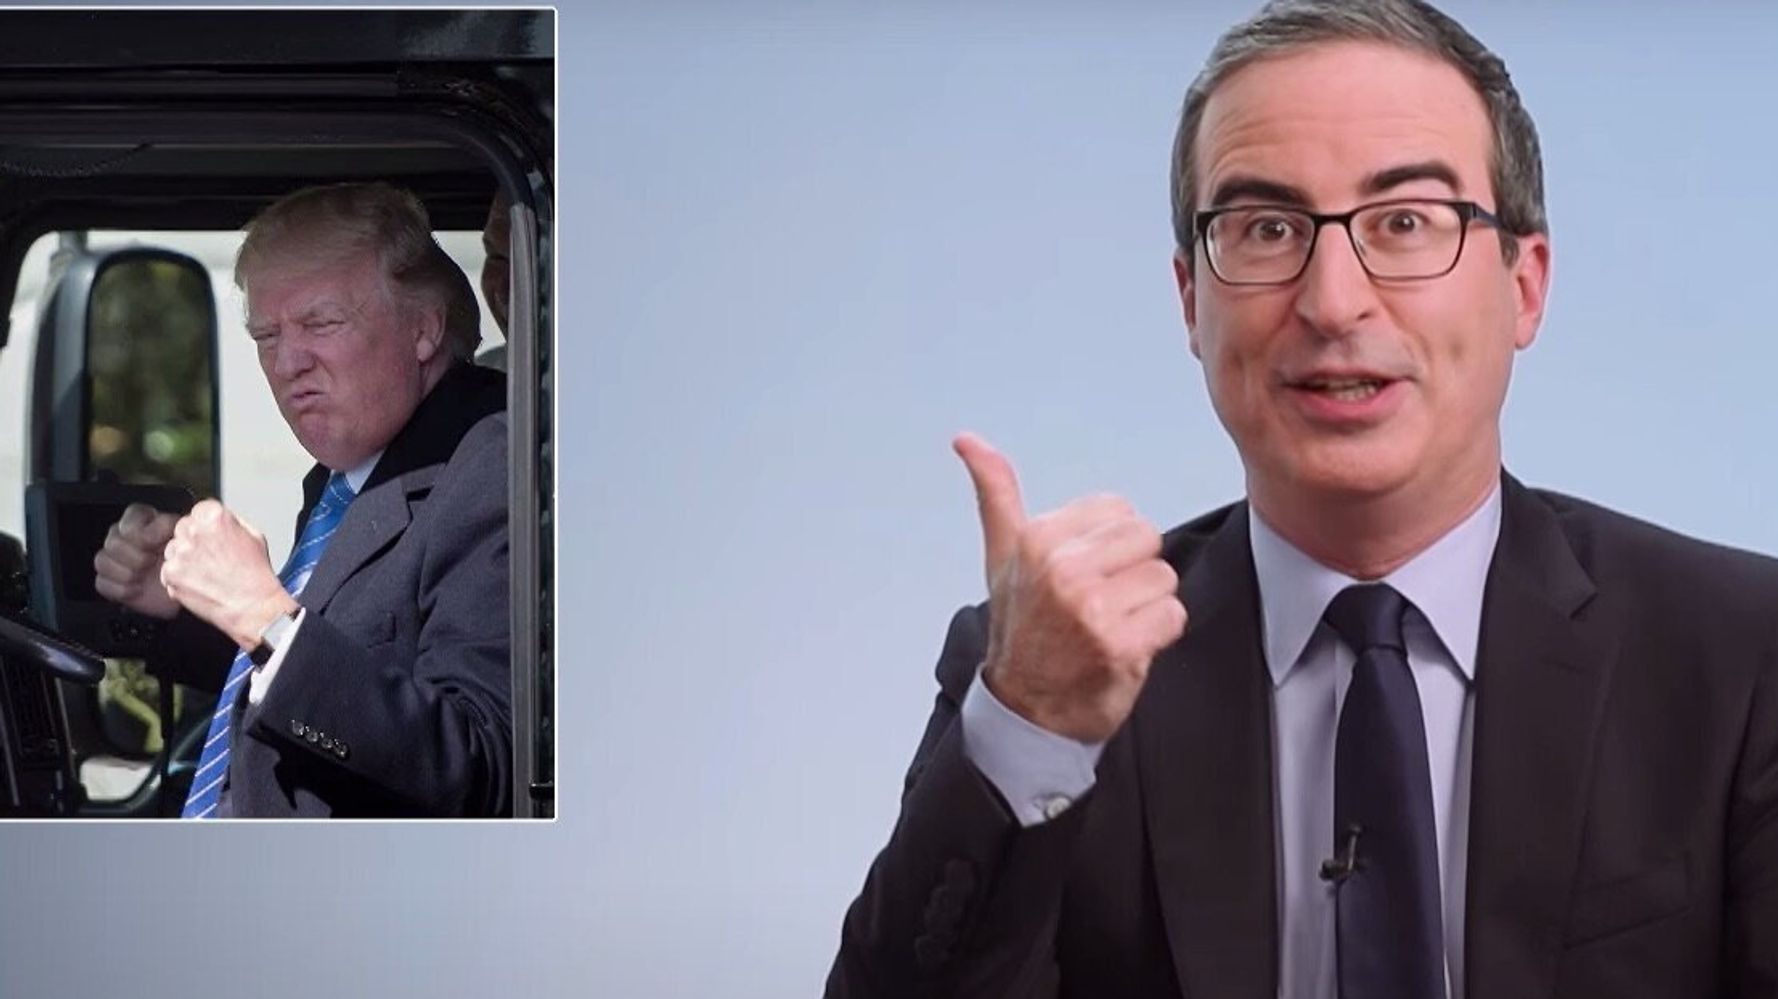 John Oliver Gives 'This A**hole' Trump The Post-Election Treatment He Deserves